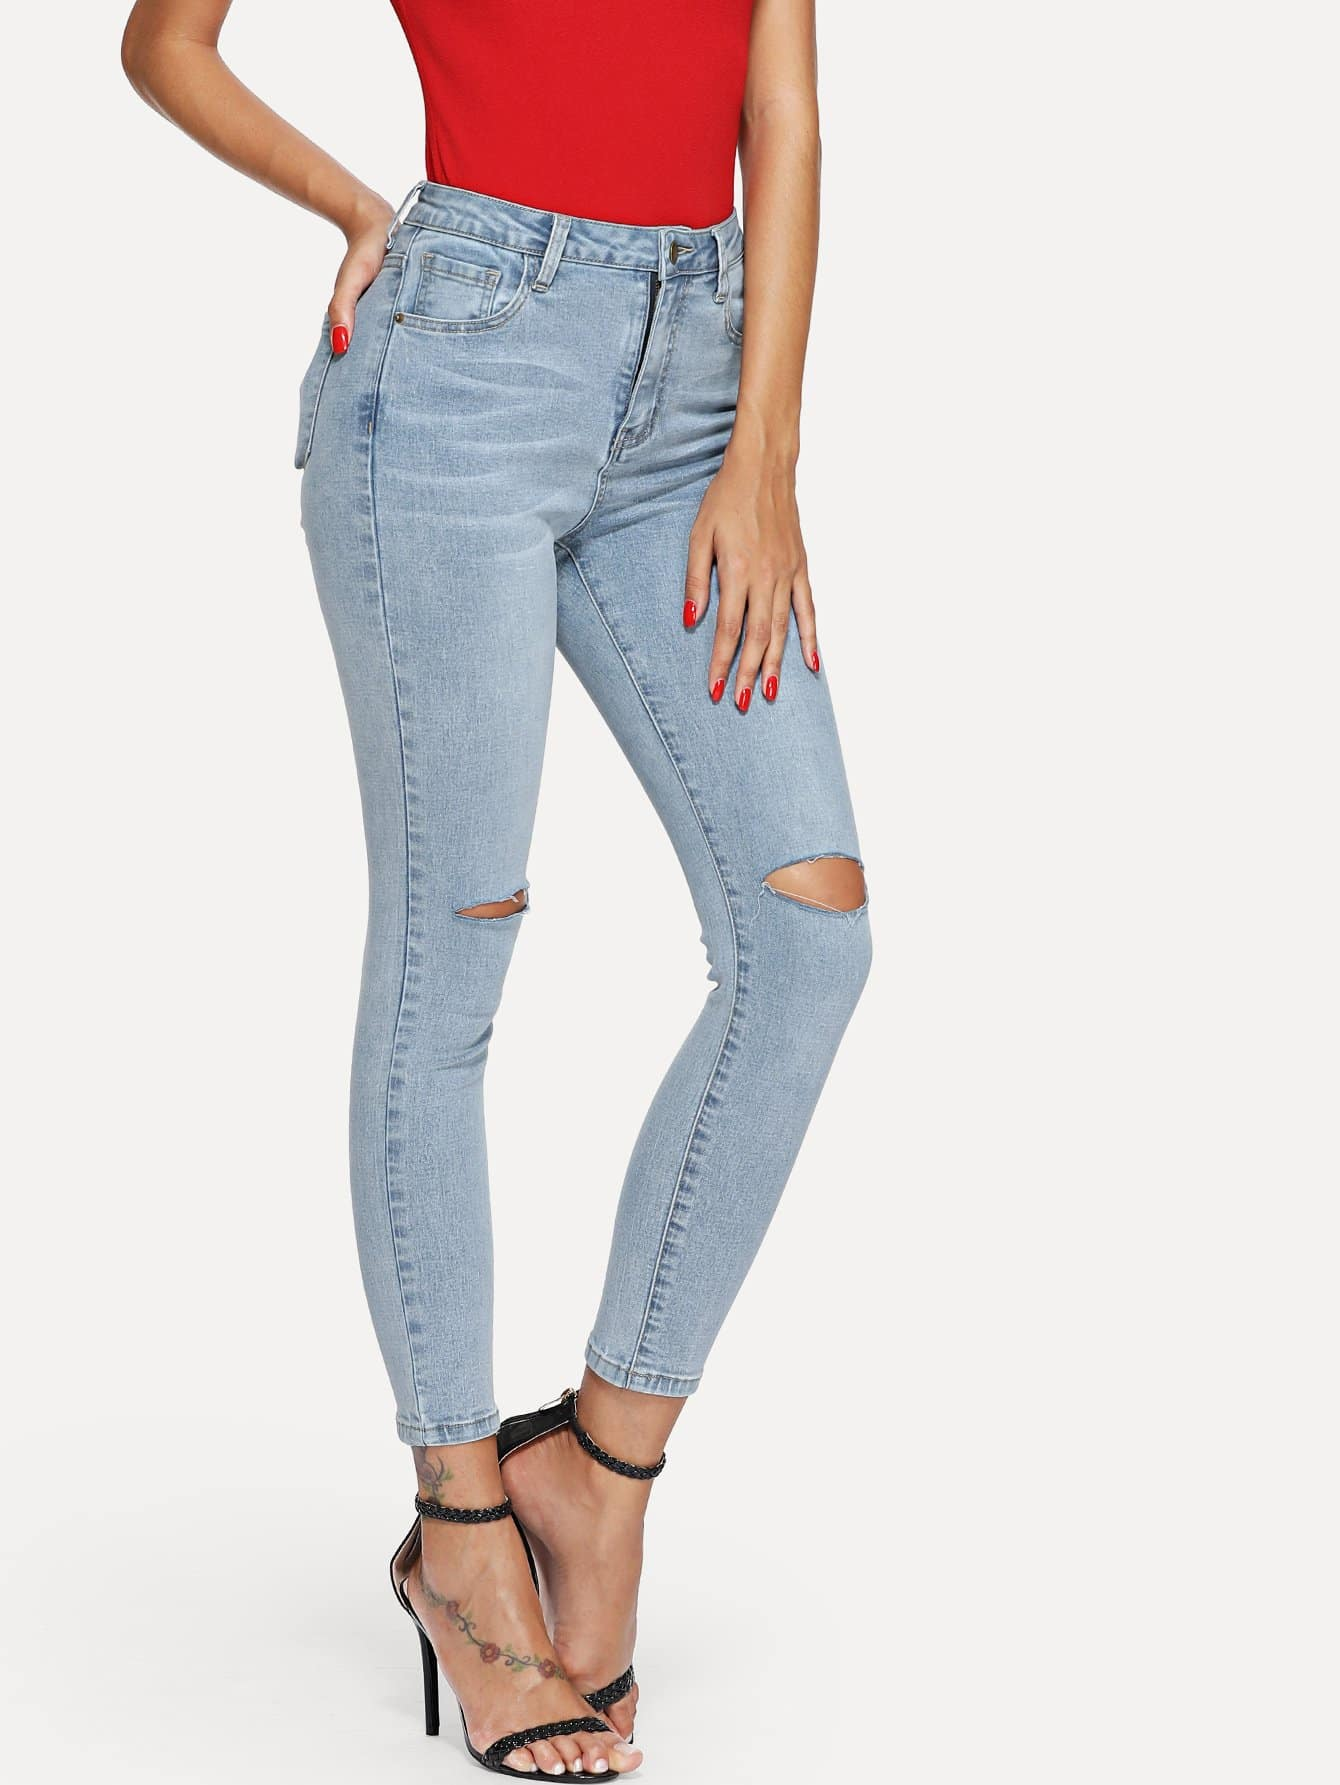 Knee Ripped Skinny Jeans summer boyfriend jeans for women hole ripped white lace flowers denim pants low waist mujer vintage skinny stretch jeans female